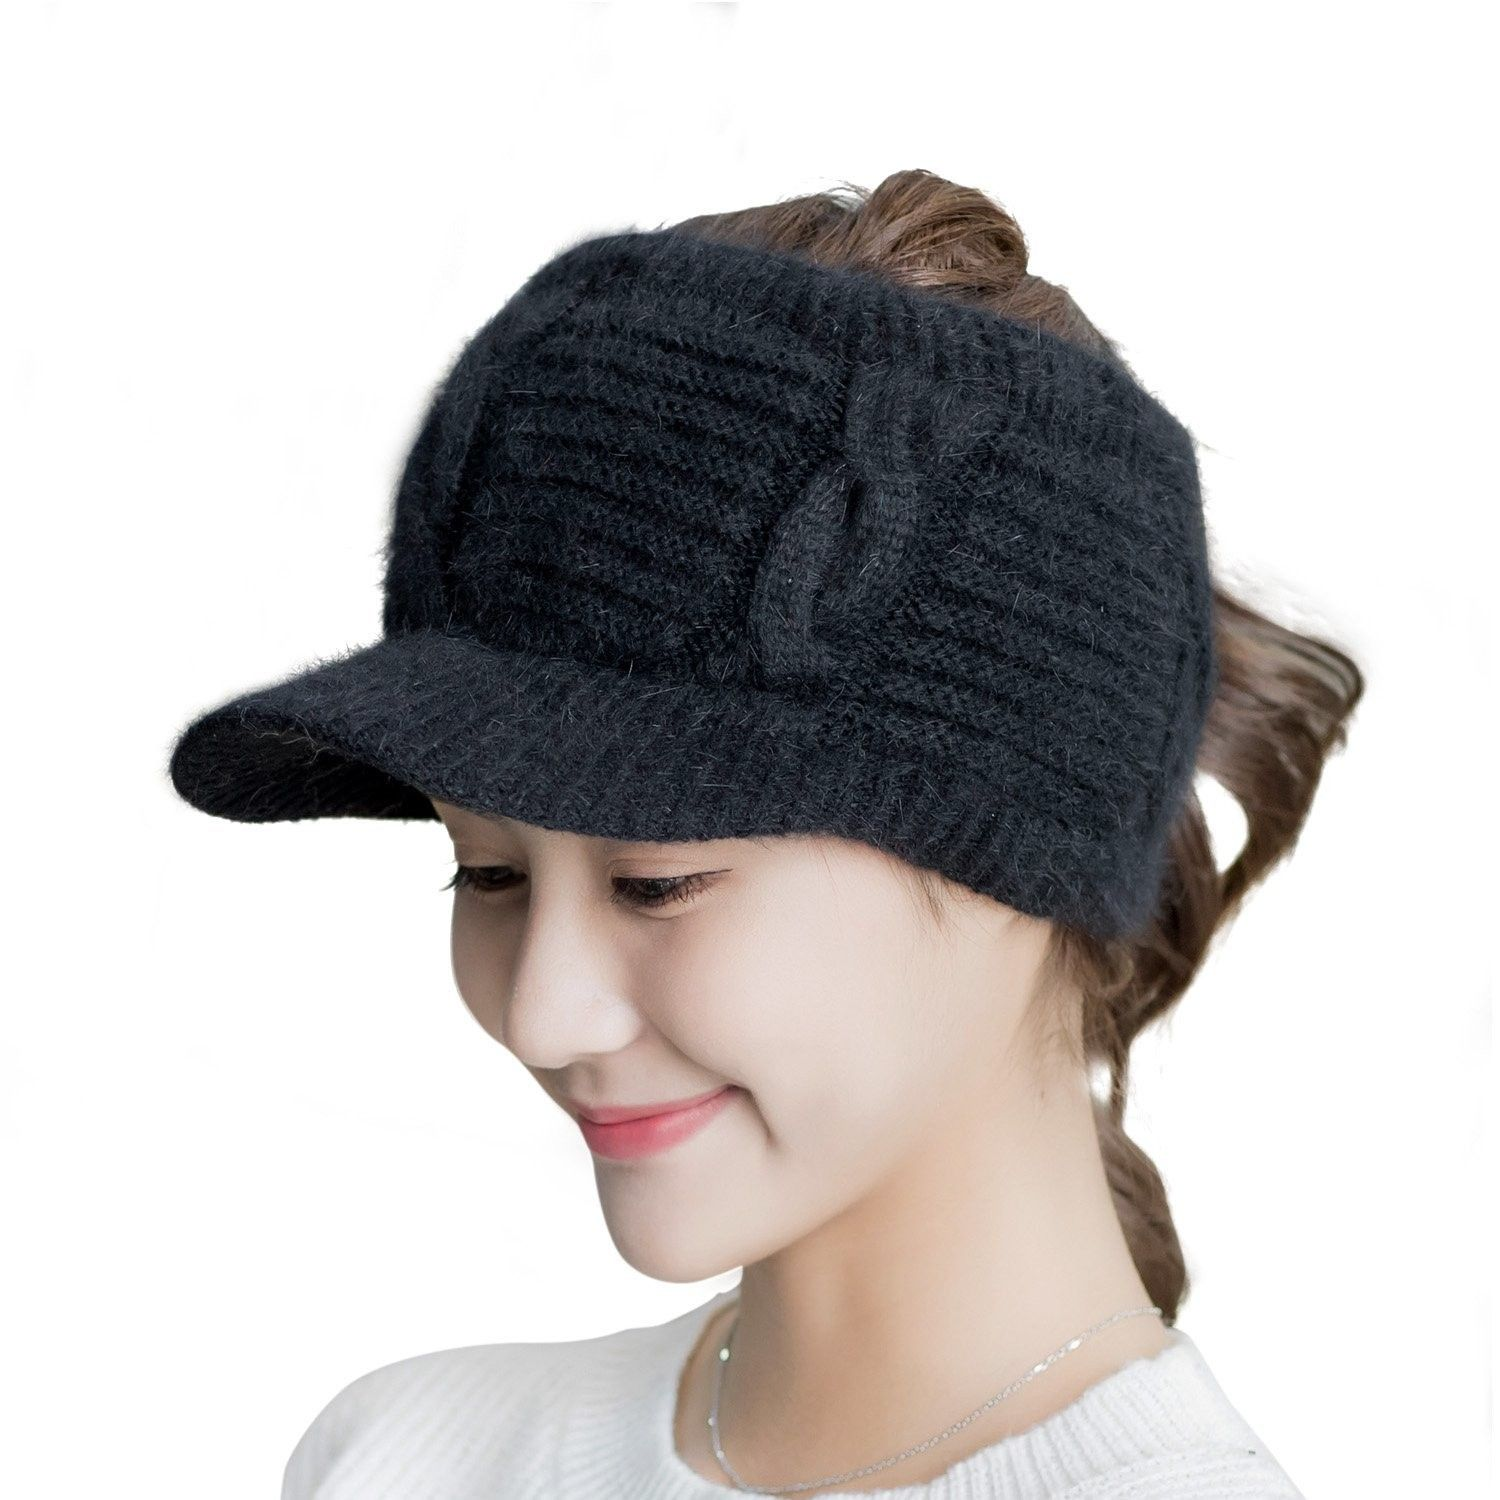 8cff7728eaa Women Girl s Knit Visor Headband Warm Plush-Lined Topless Baseball Cap Hat  - Black - C3188HQTR0N - Hats   Caps